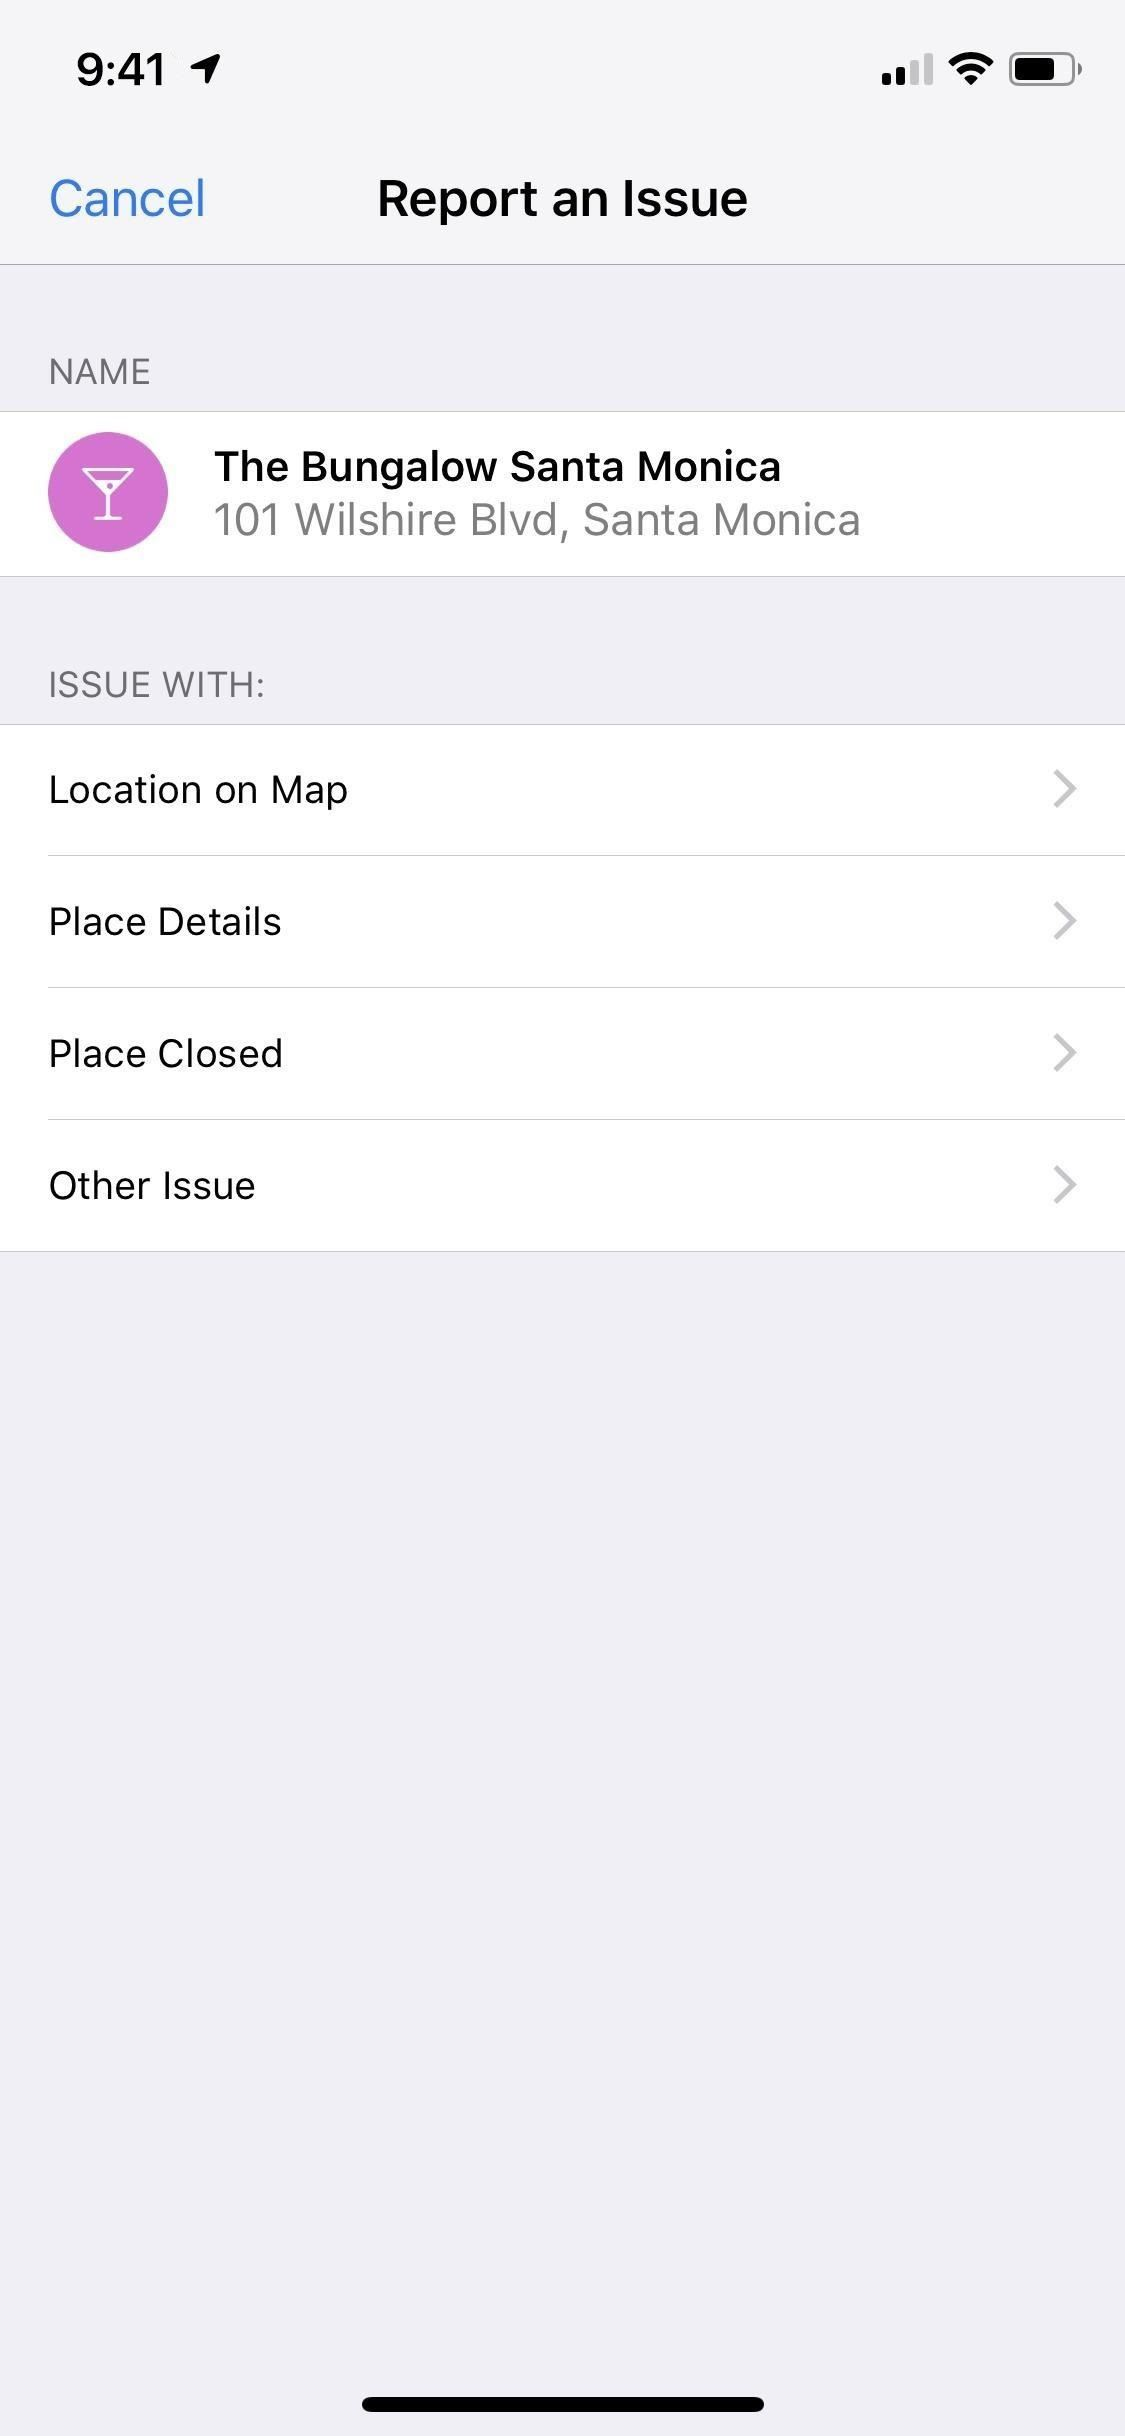 14 Apple Maps Features & Changes in iOS 13 You Need to Know About